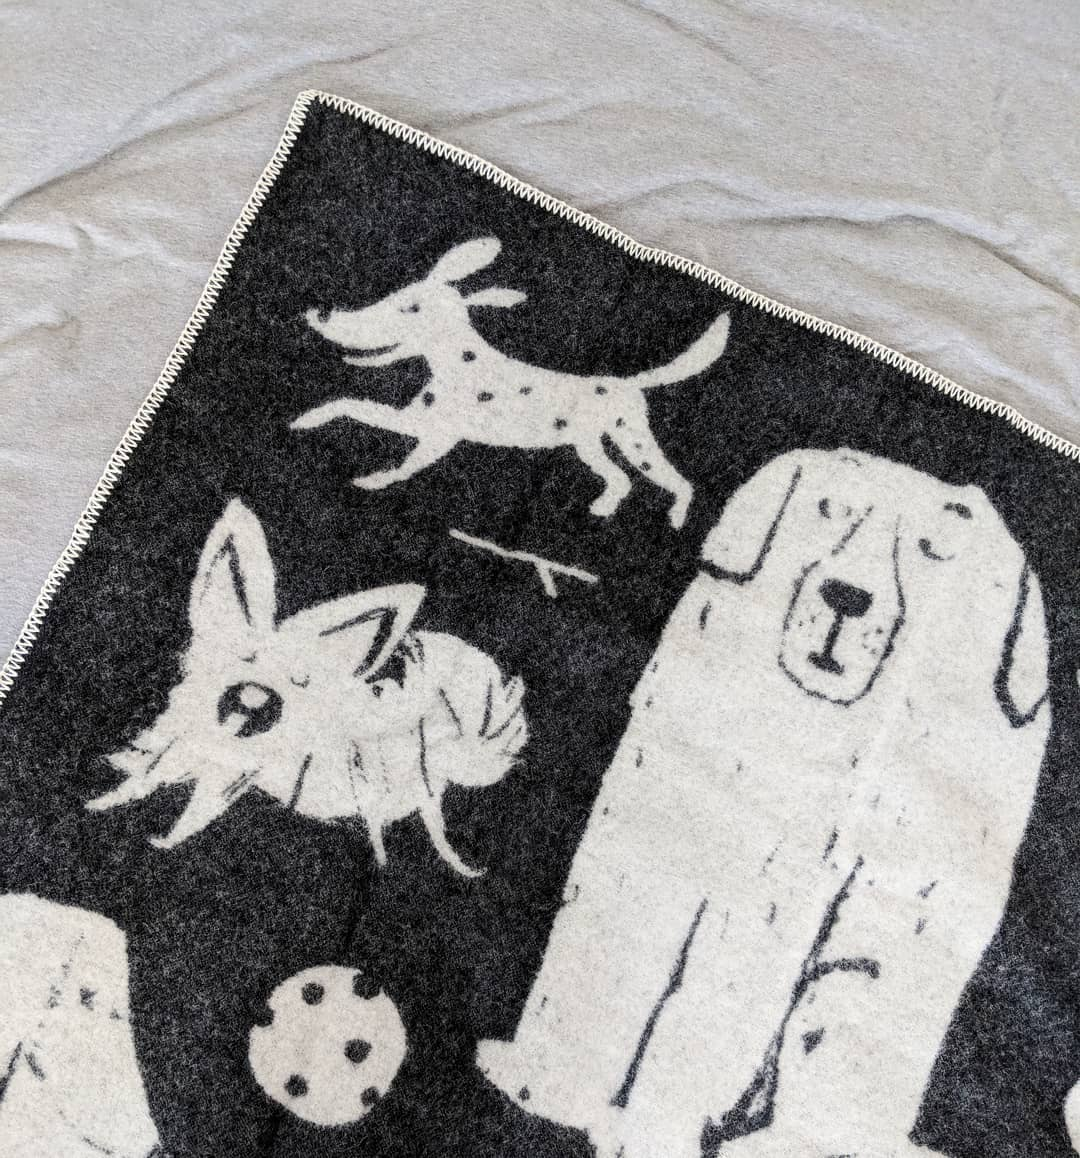 Dog Park Blanket from Four Legs / Four Walls